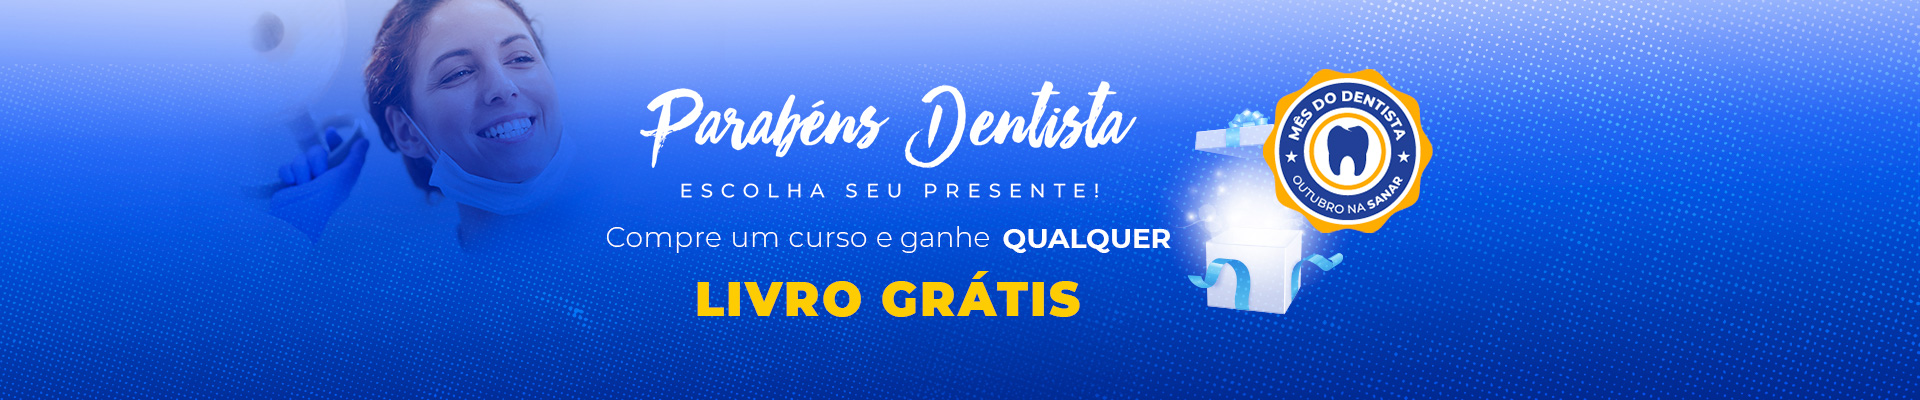 Mes do Dentista